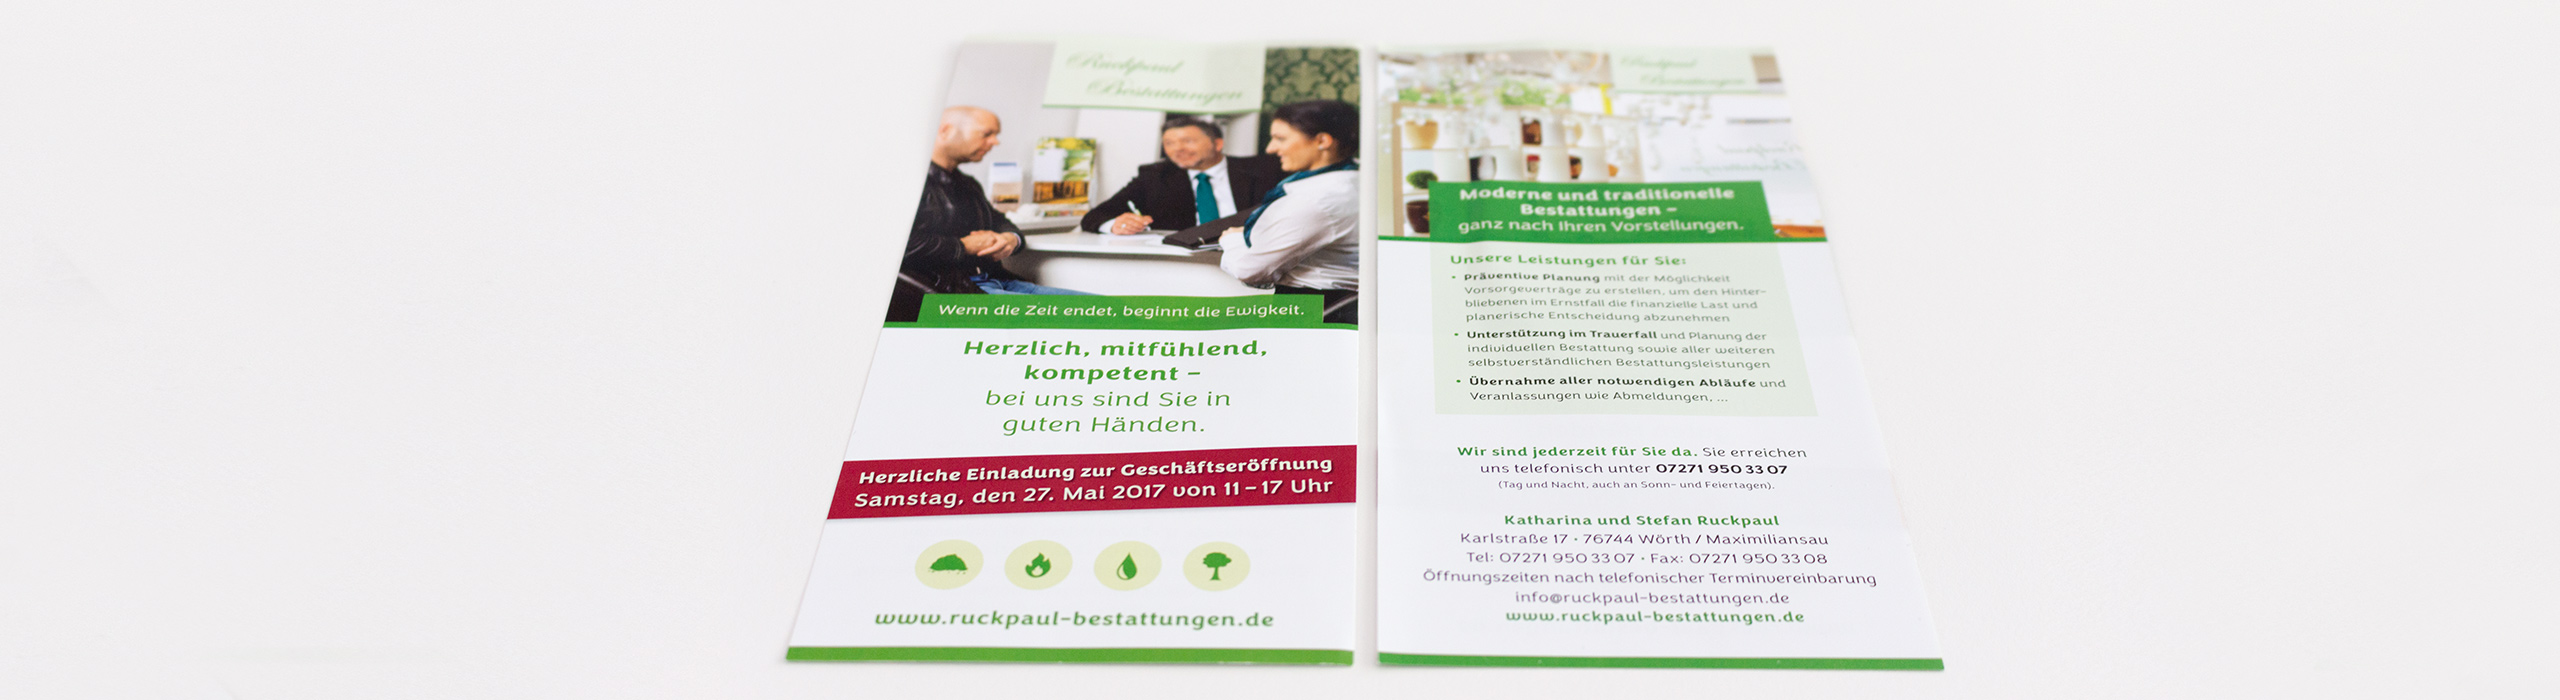 Ruckpaul Bestattungen Aktionsflyer